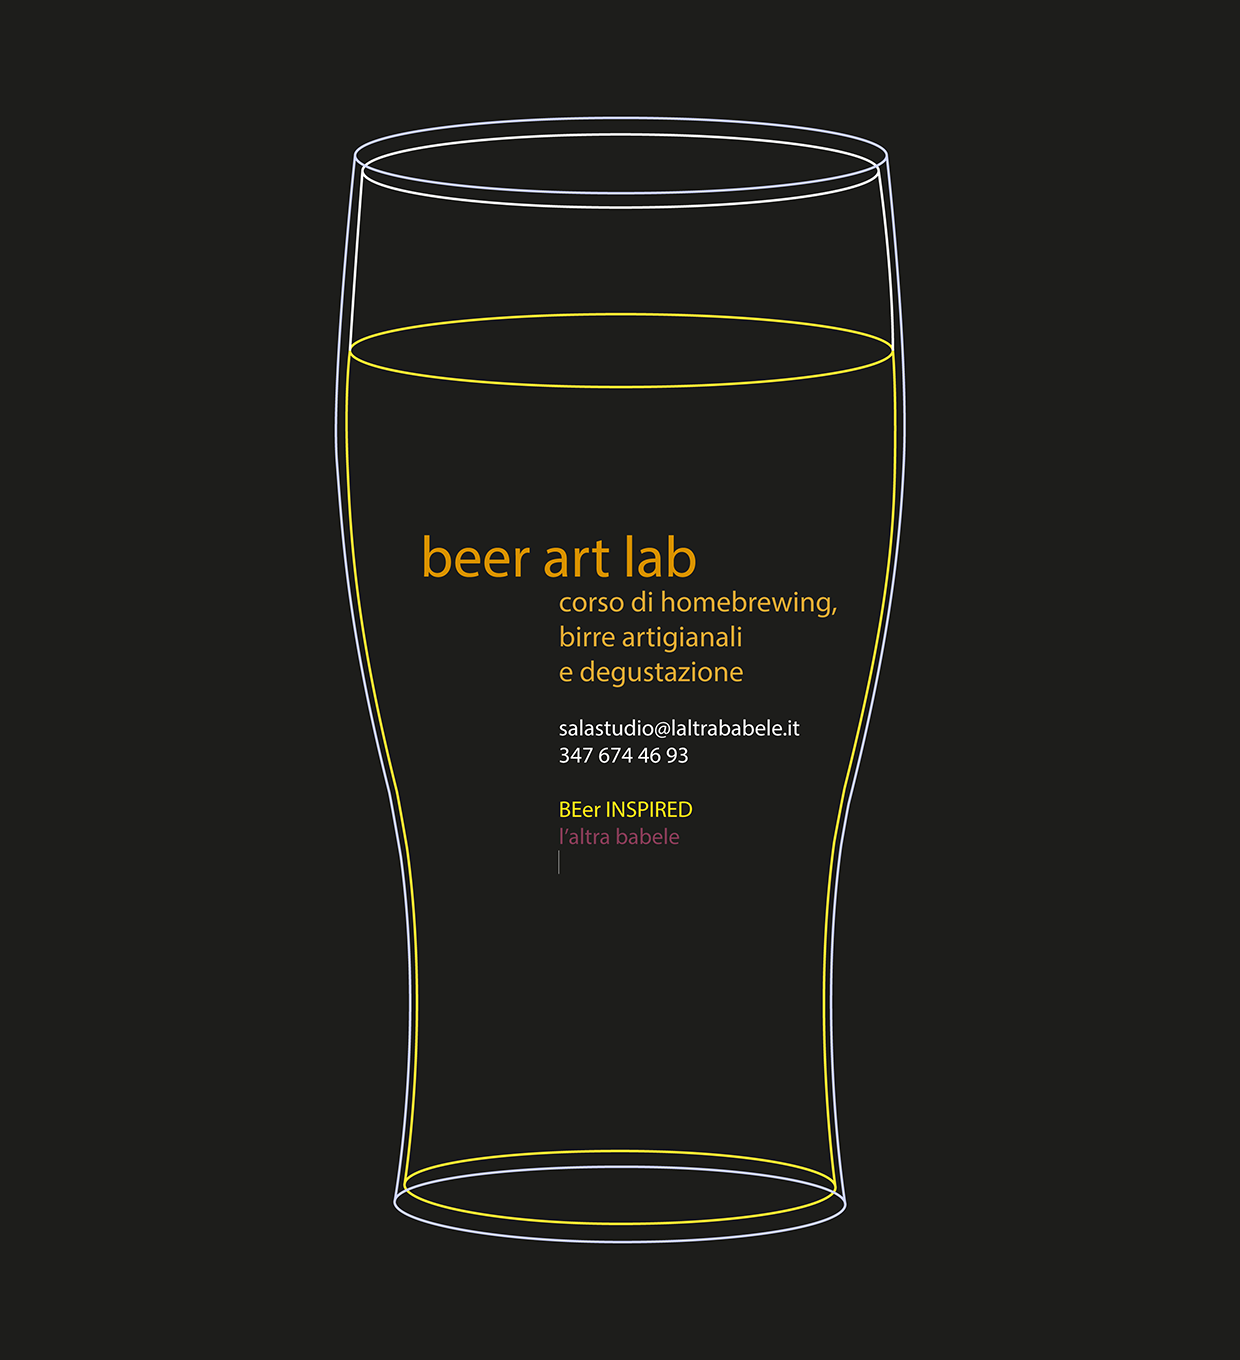 BEER_ART_LAB_sito